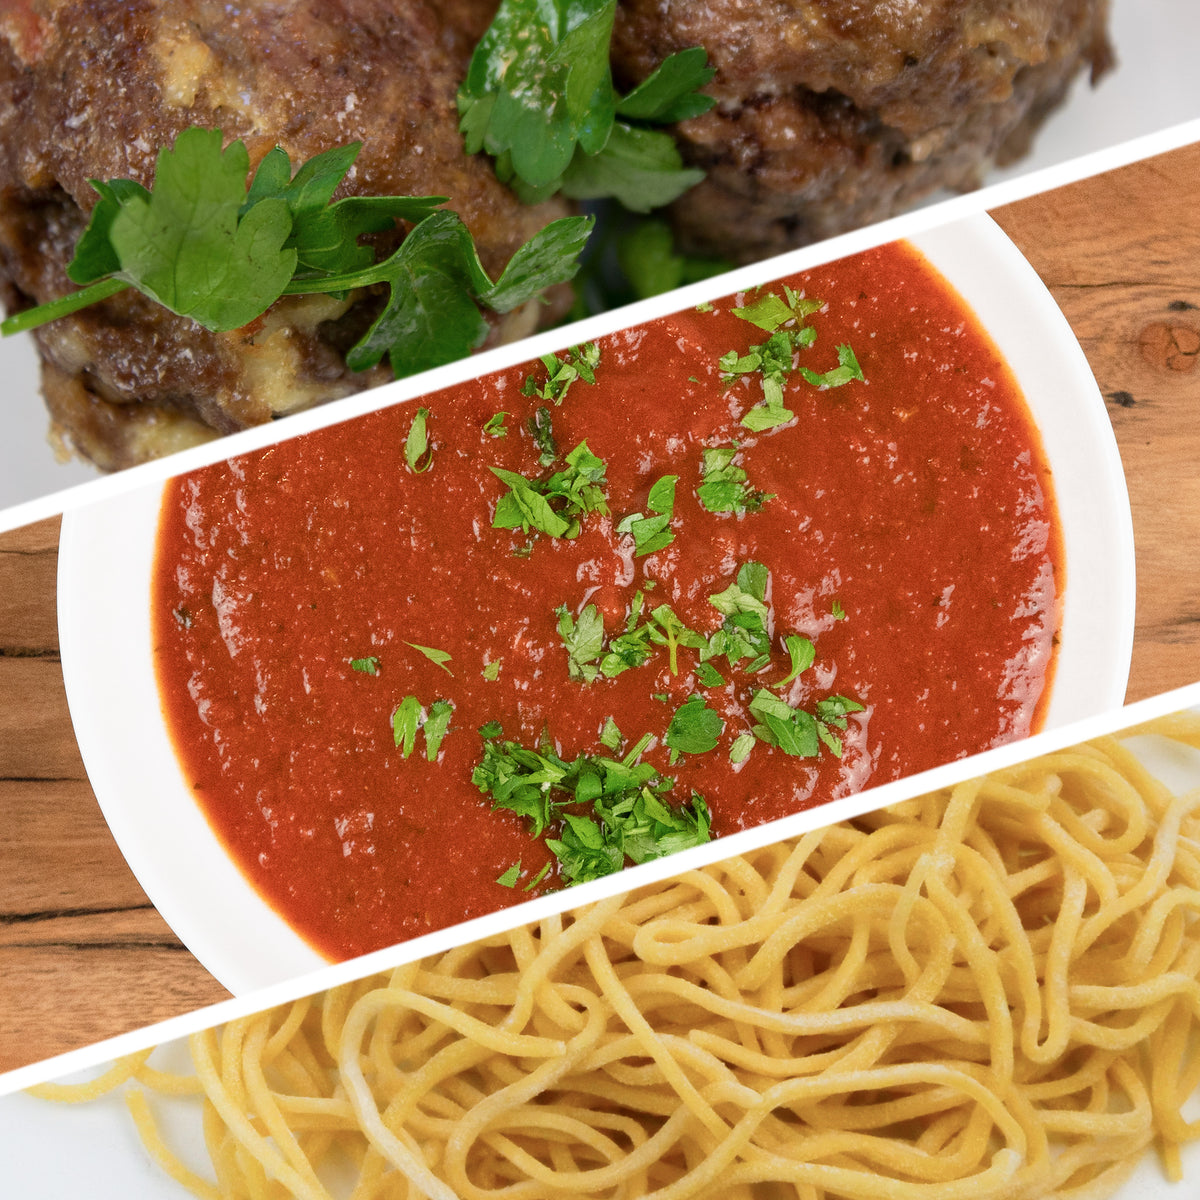 Spaghetti Marinara and Meatballs